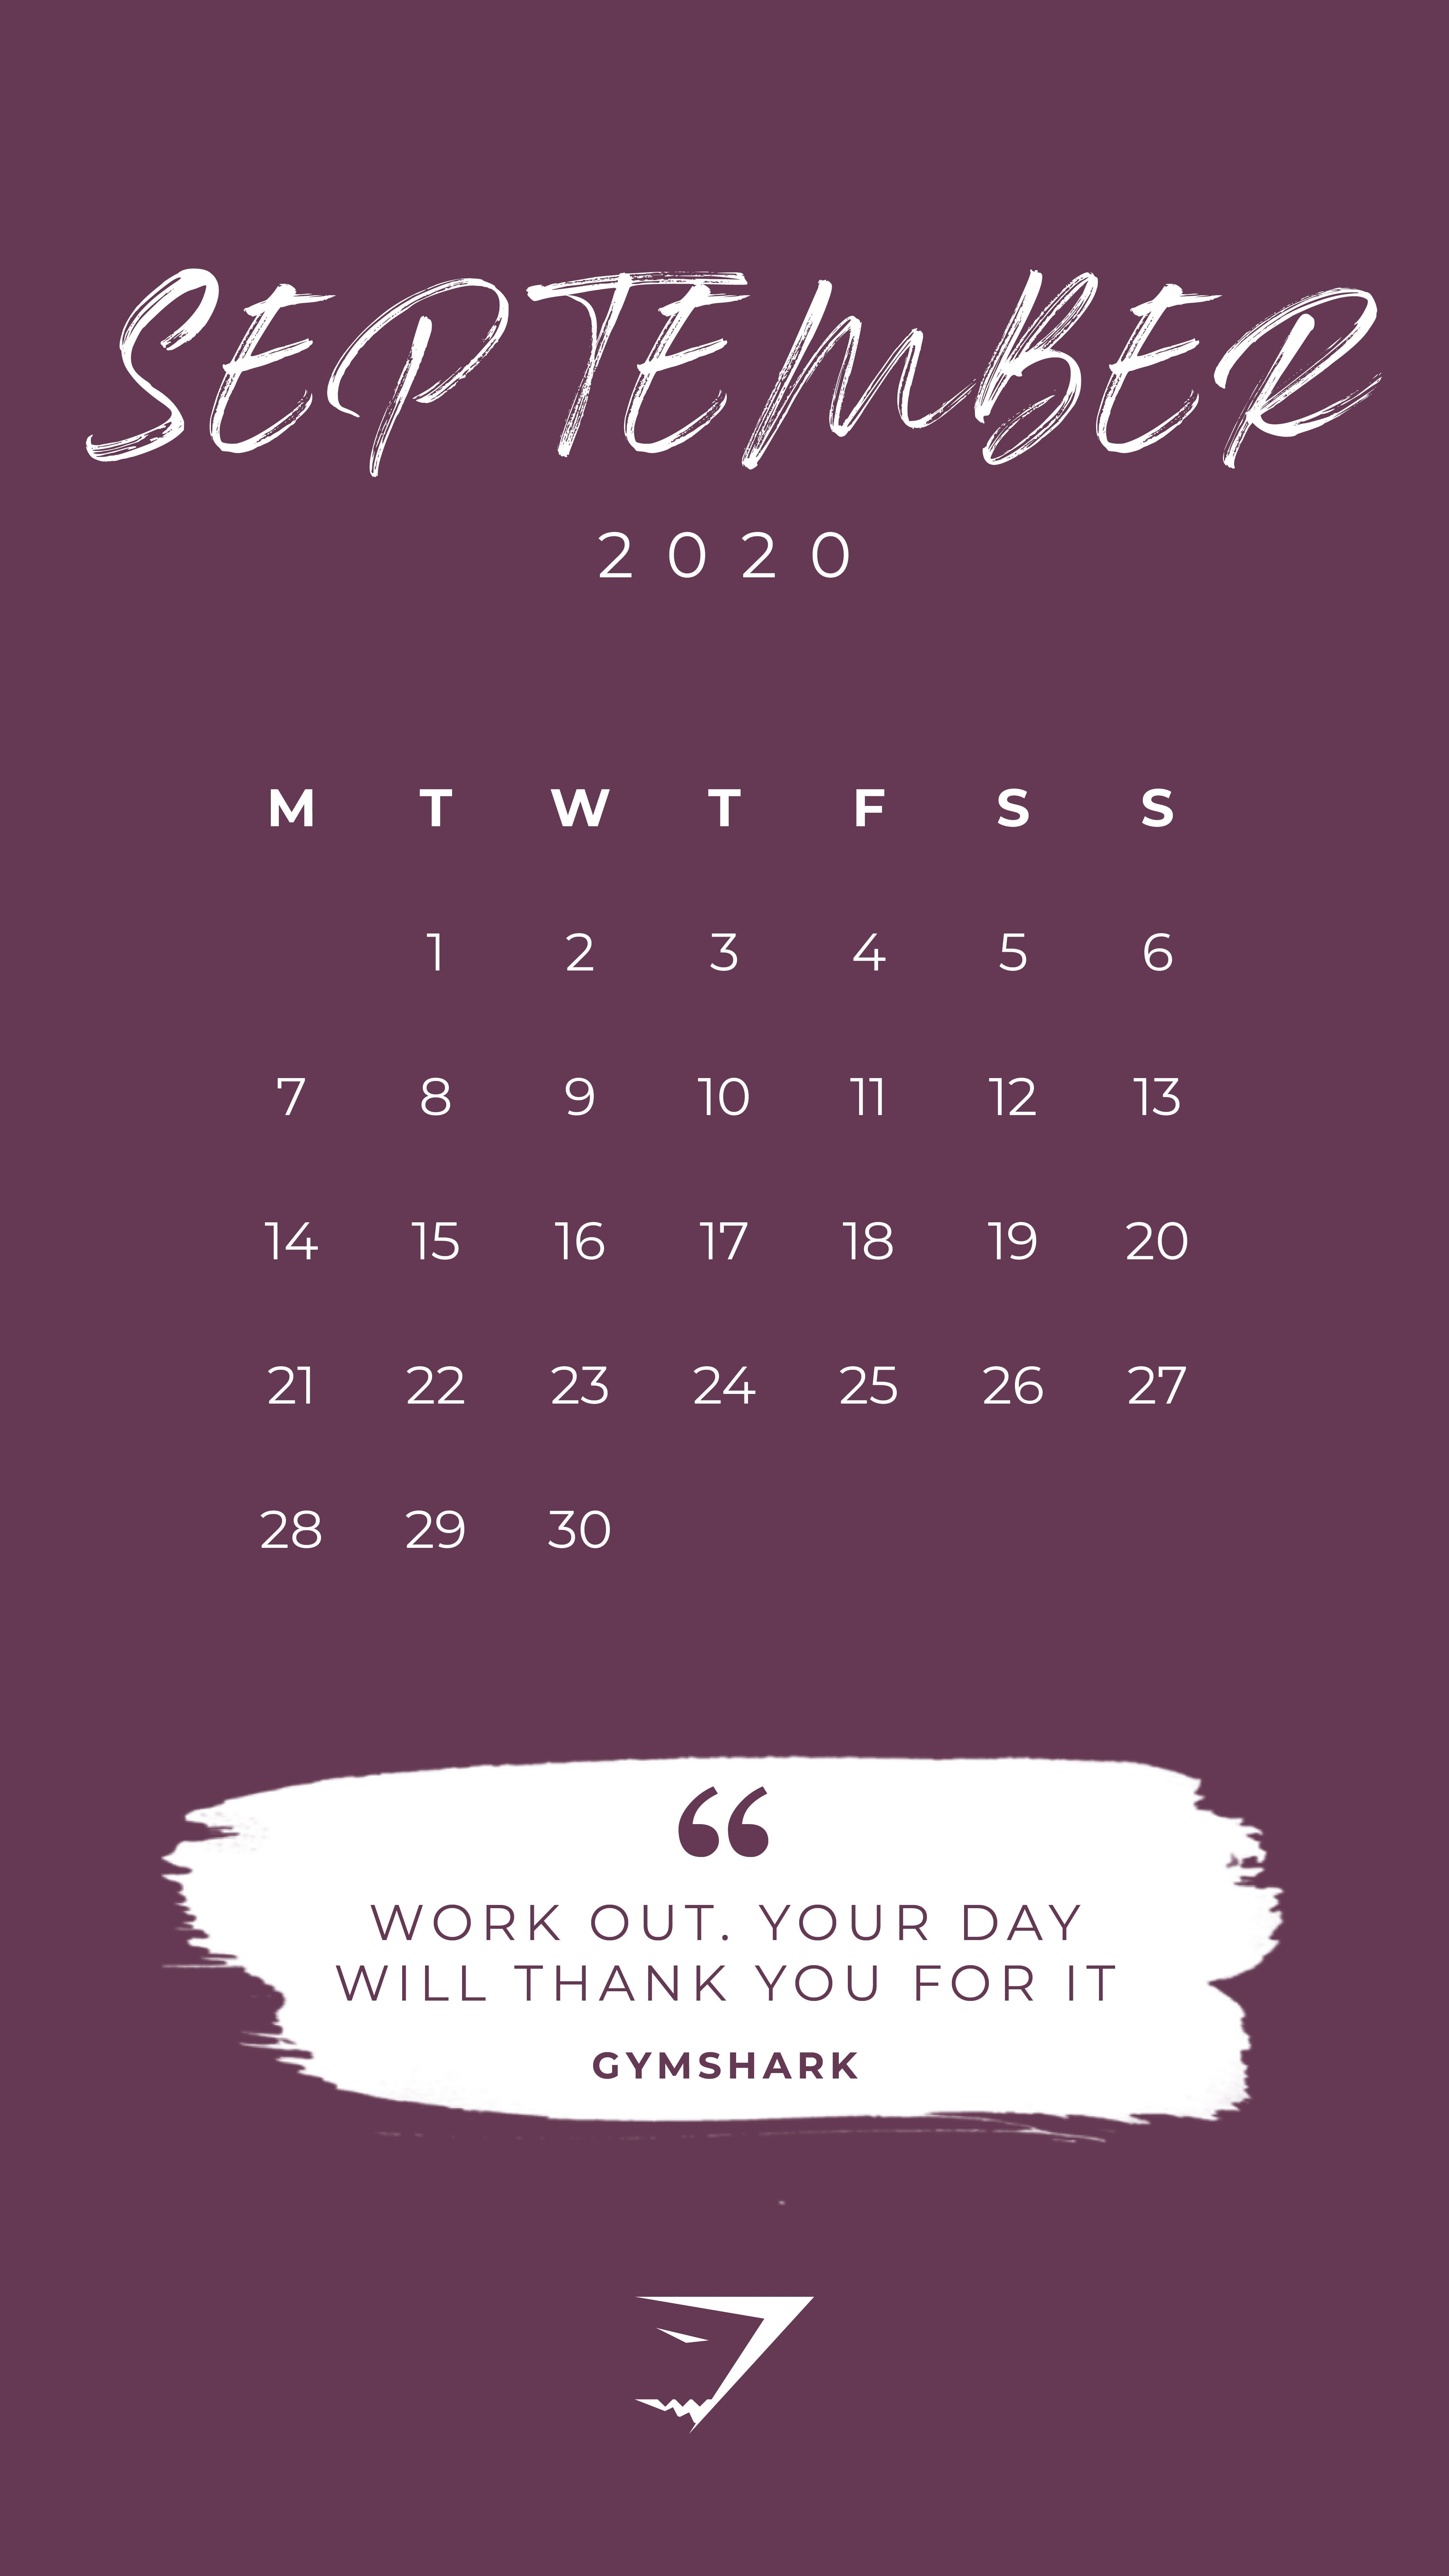 Most Current Free Of Charge September 2020 Calendar Wallpaper